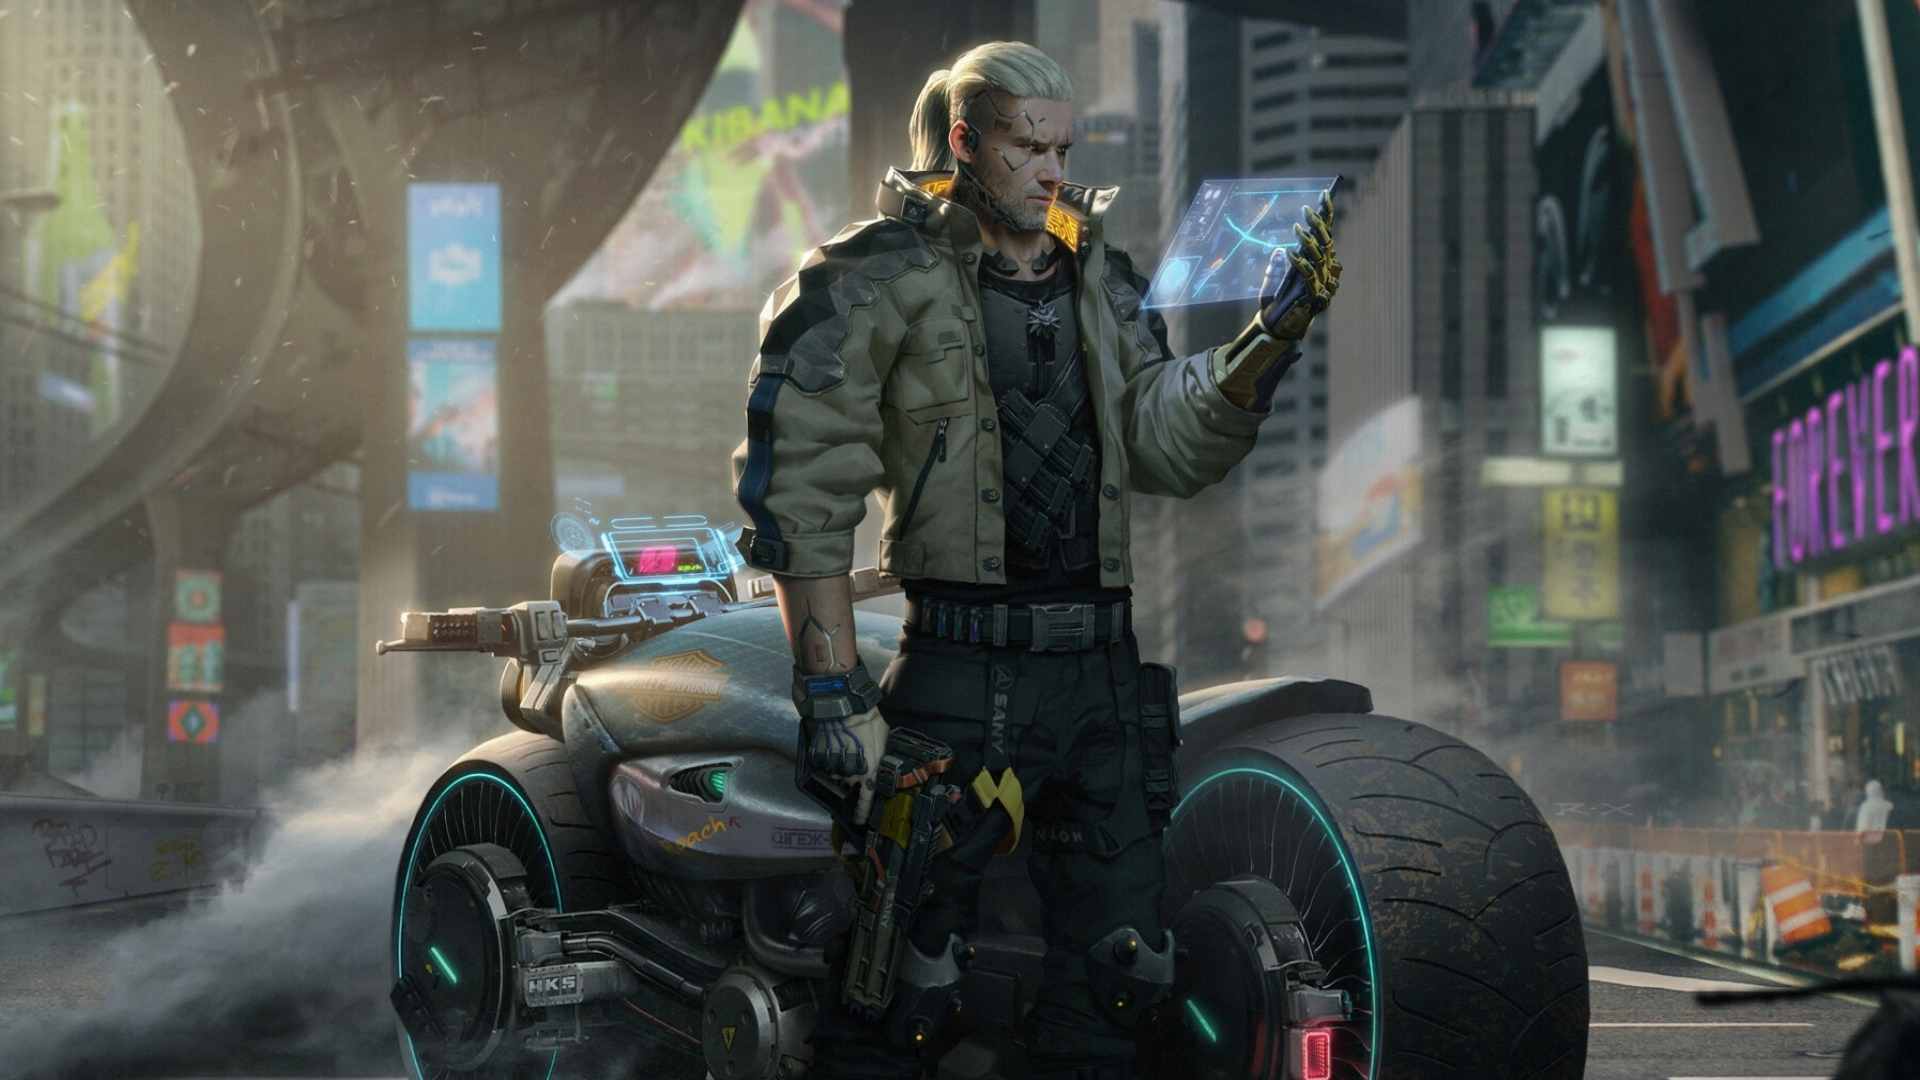 Cyberpunk 2077 Guide - Can You Change Your Appearance?